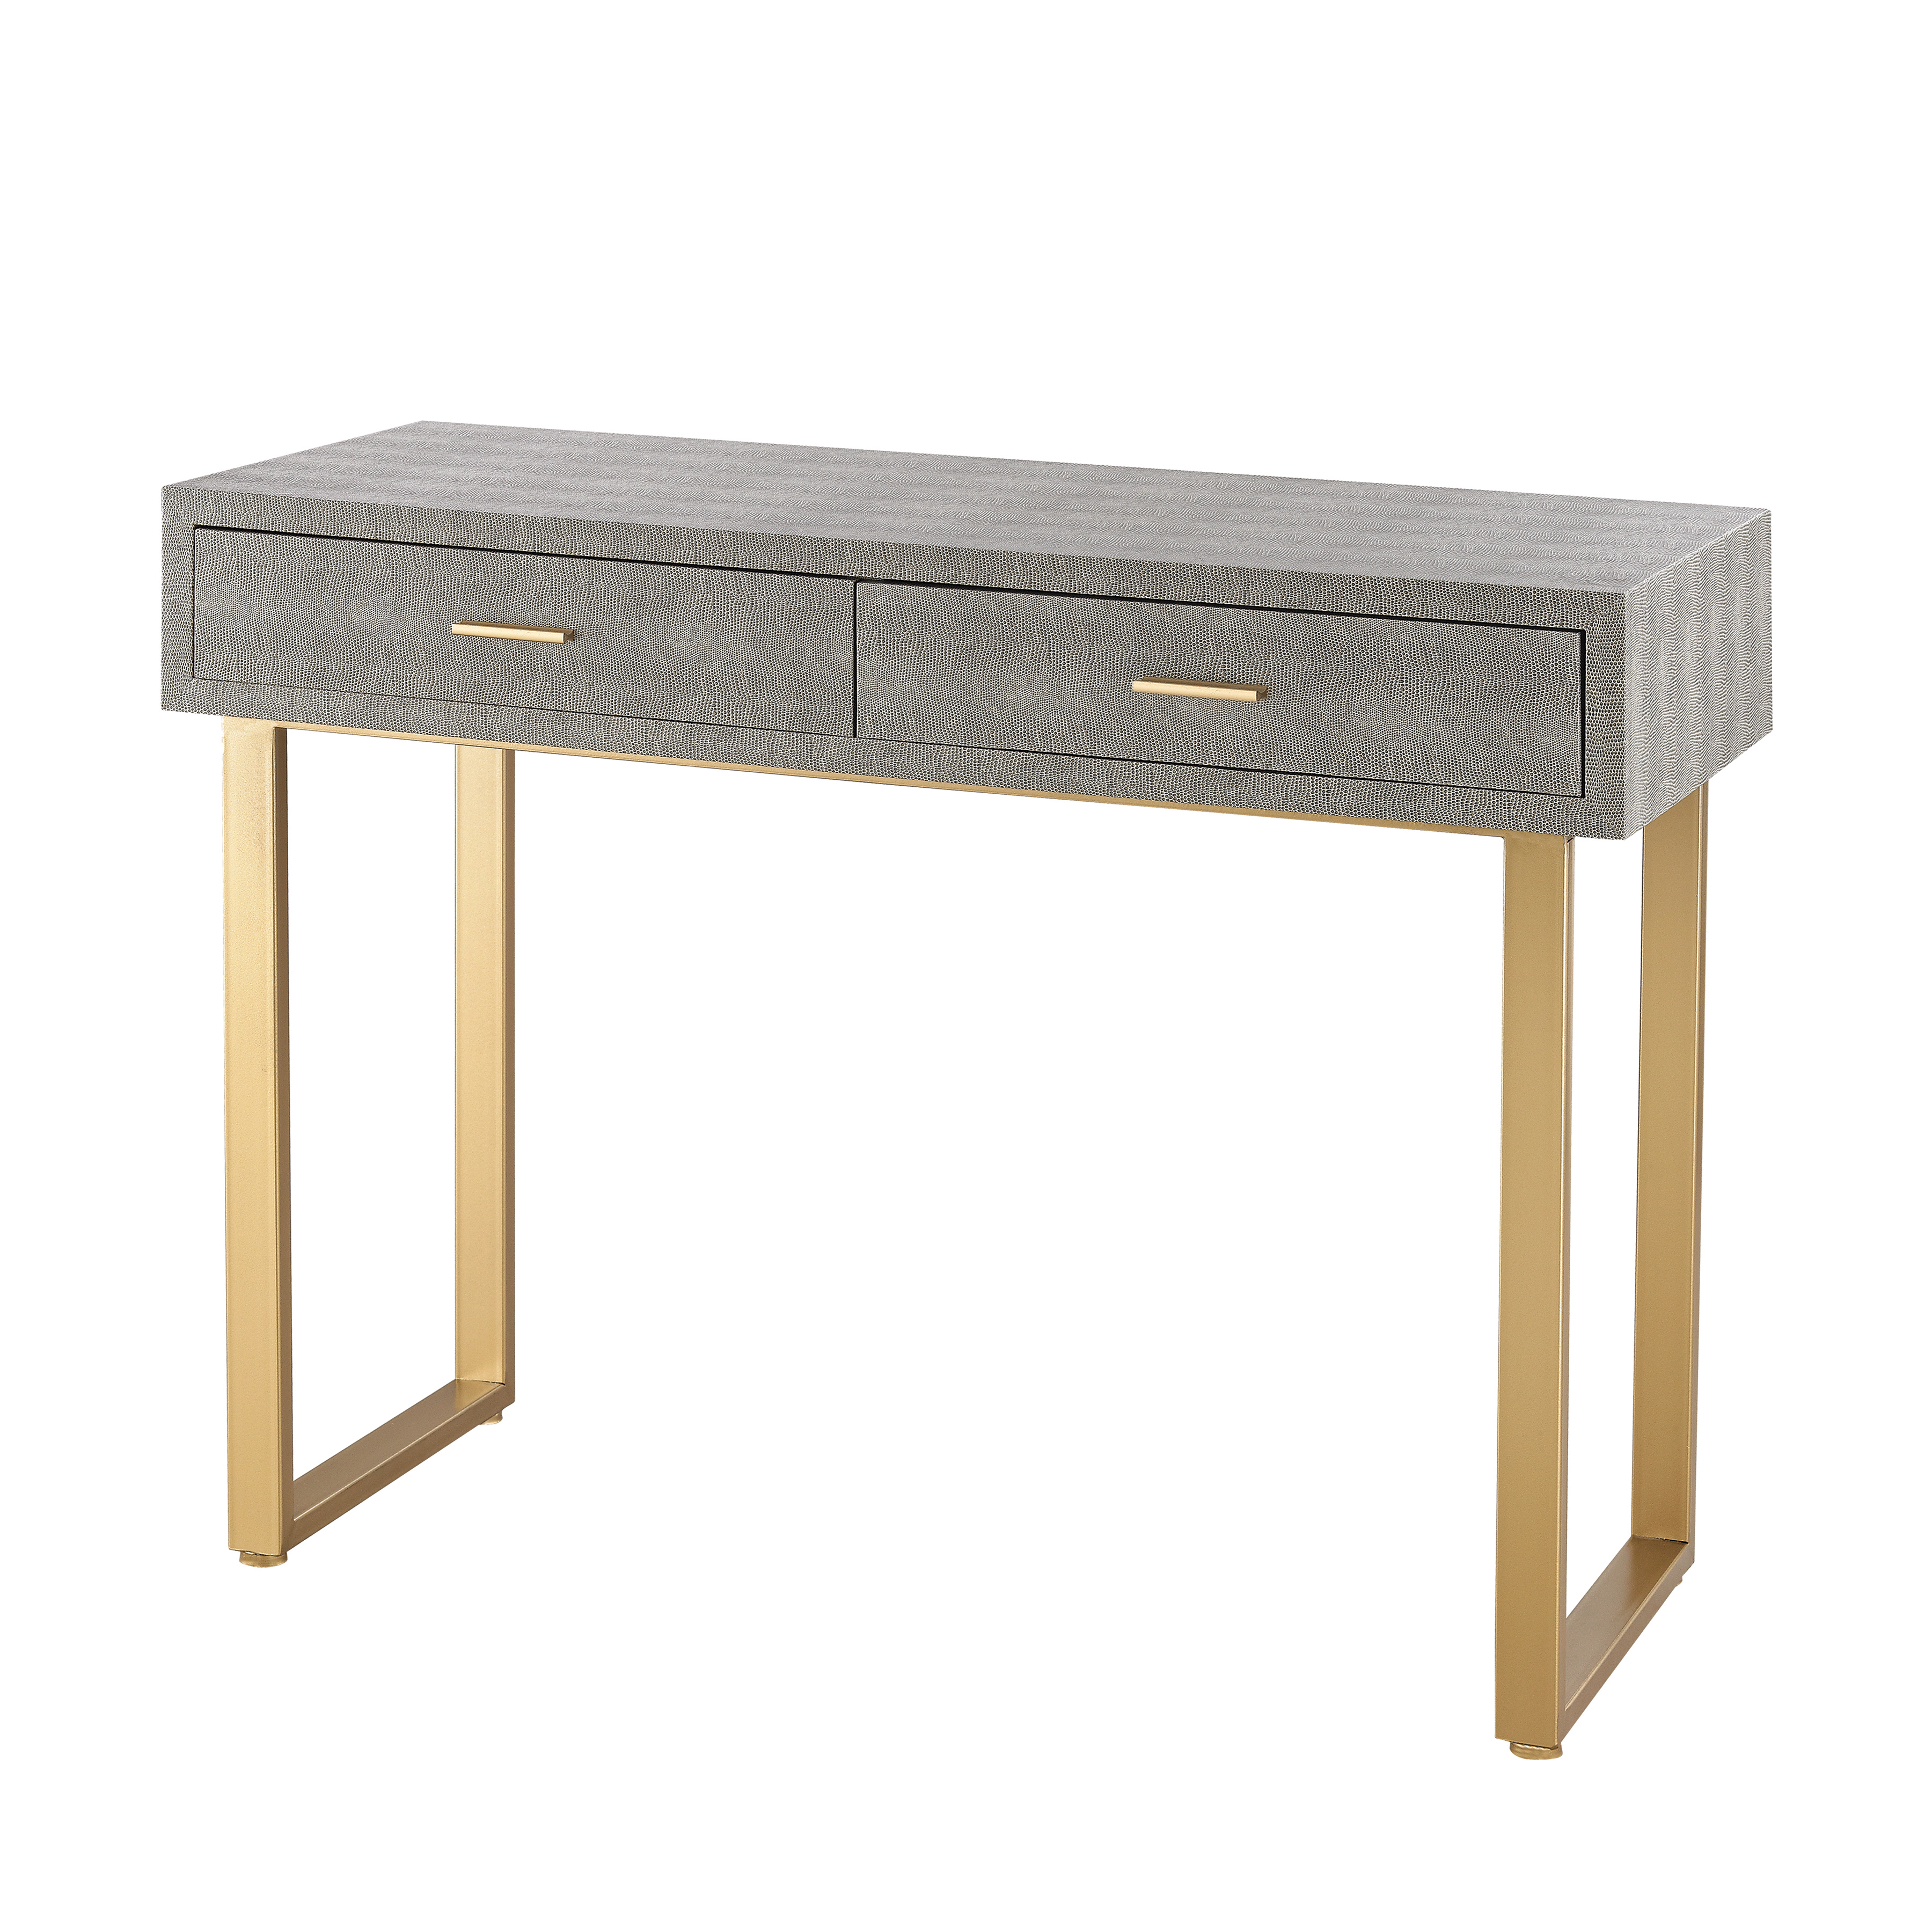 Sands Point Desk 3169-022 | ELK Home